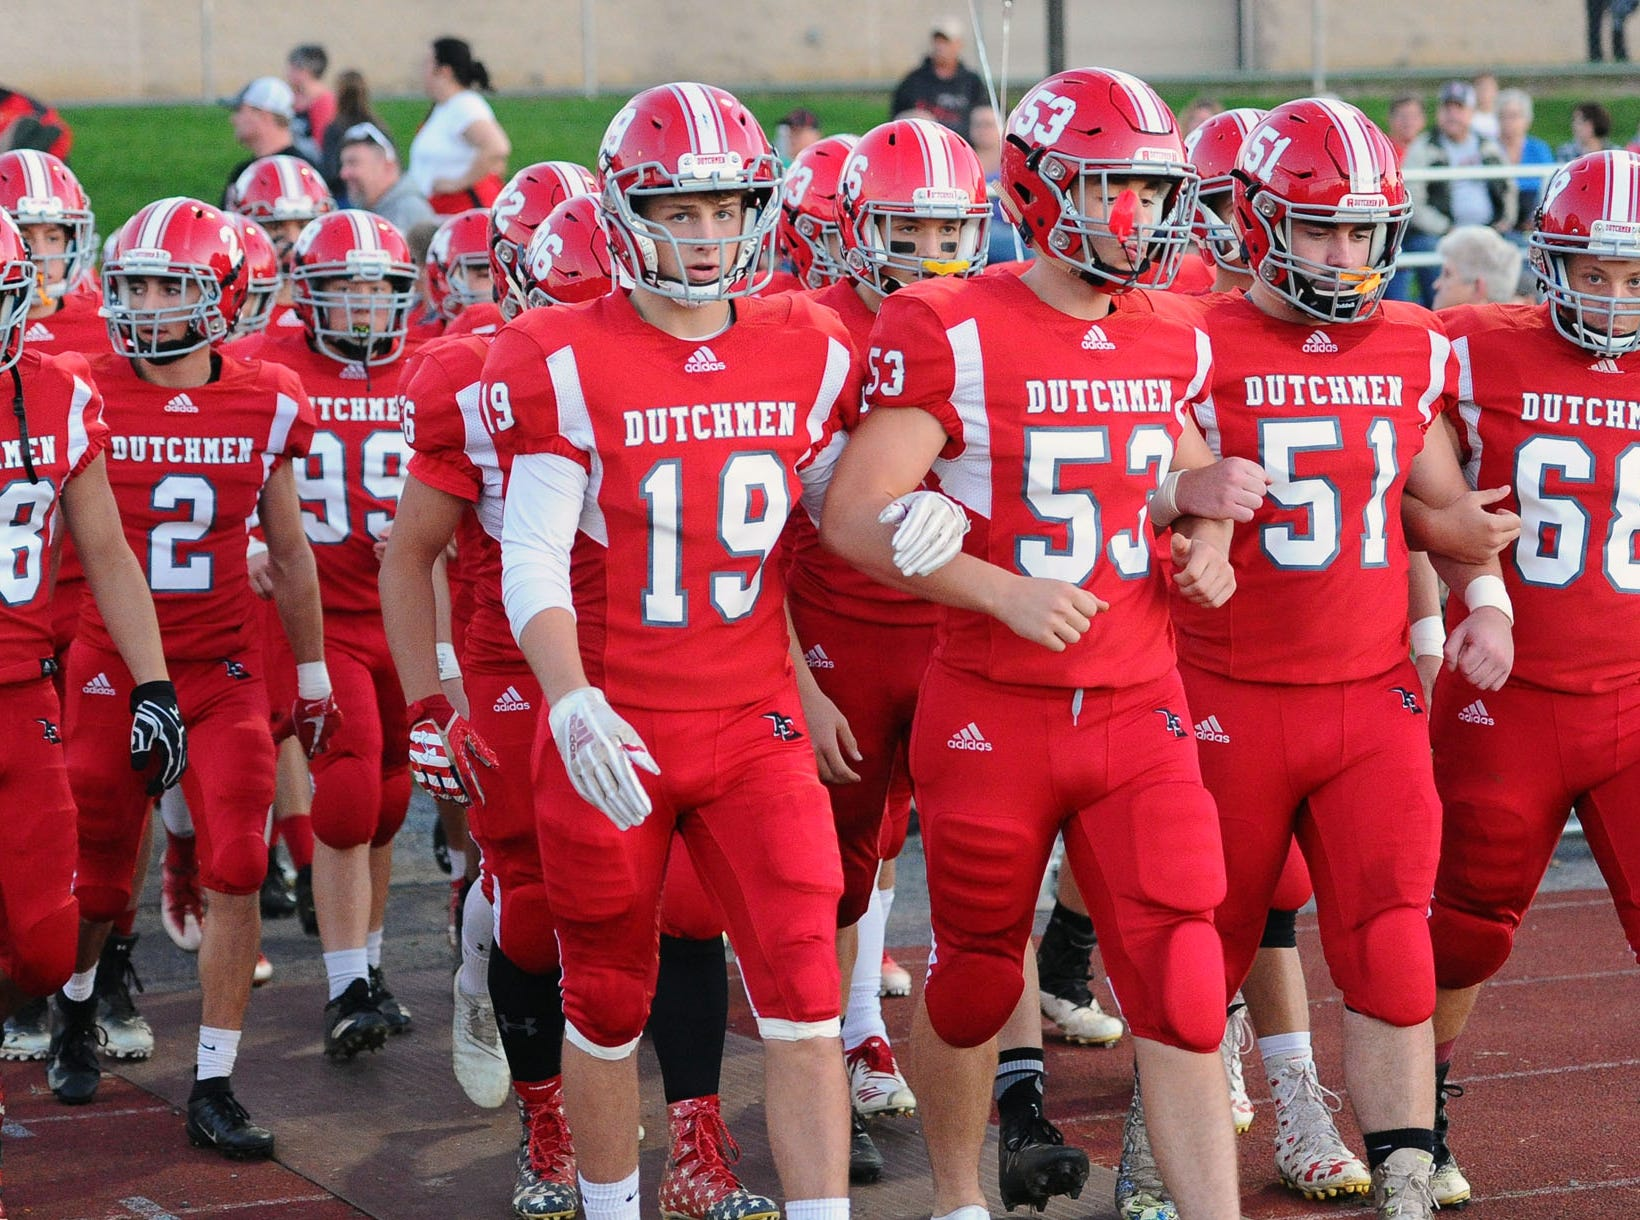 The Annville Cleona Dutchmen can clinch a home game in the district playoffs with a win at Lebanon on Friday night.